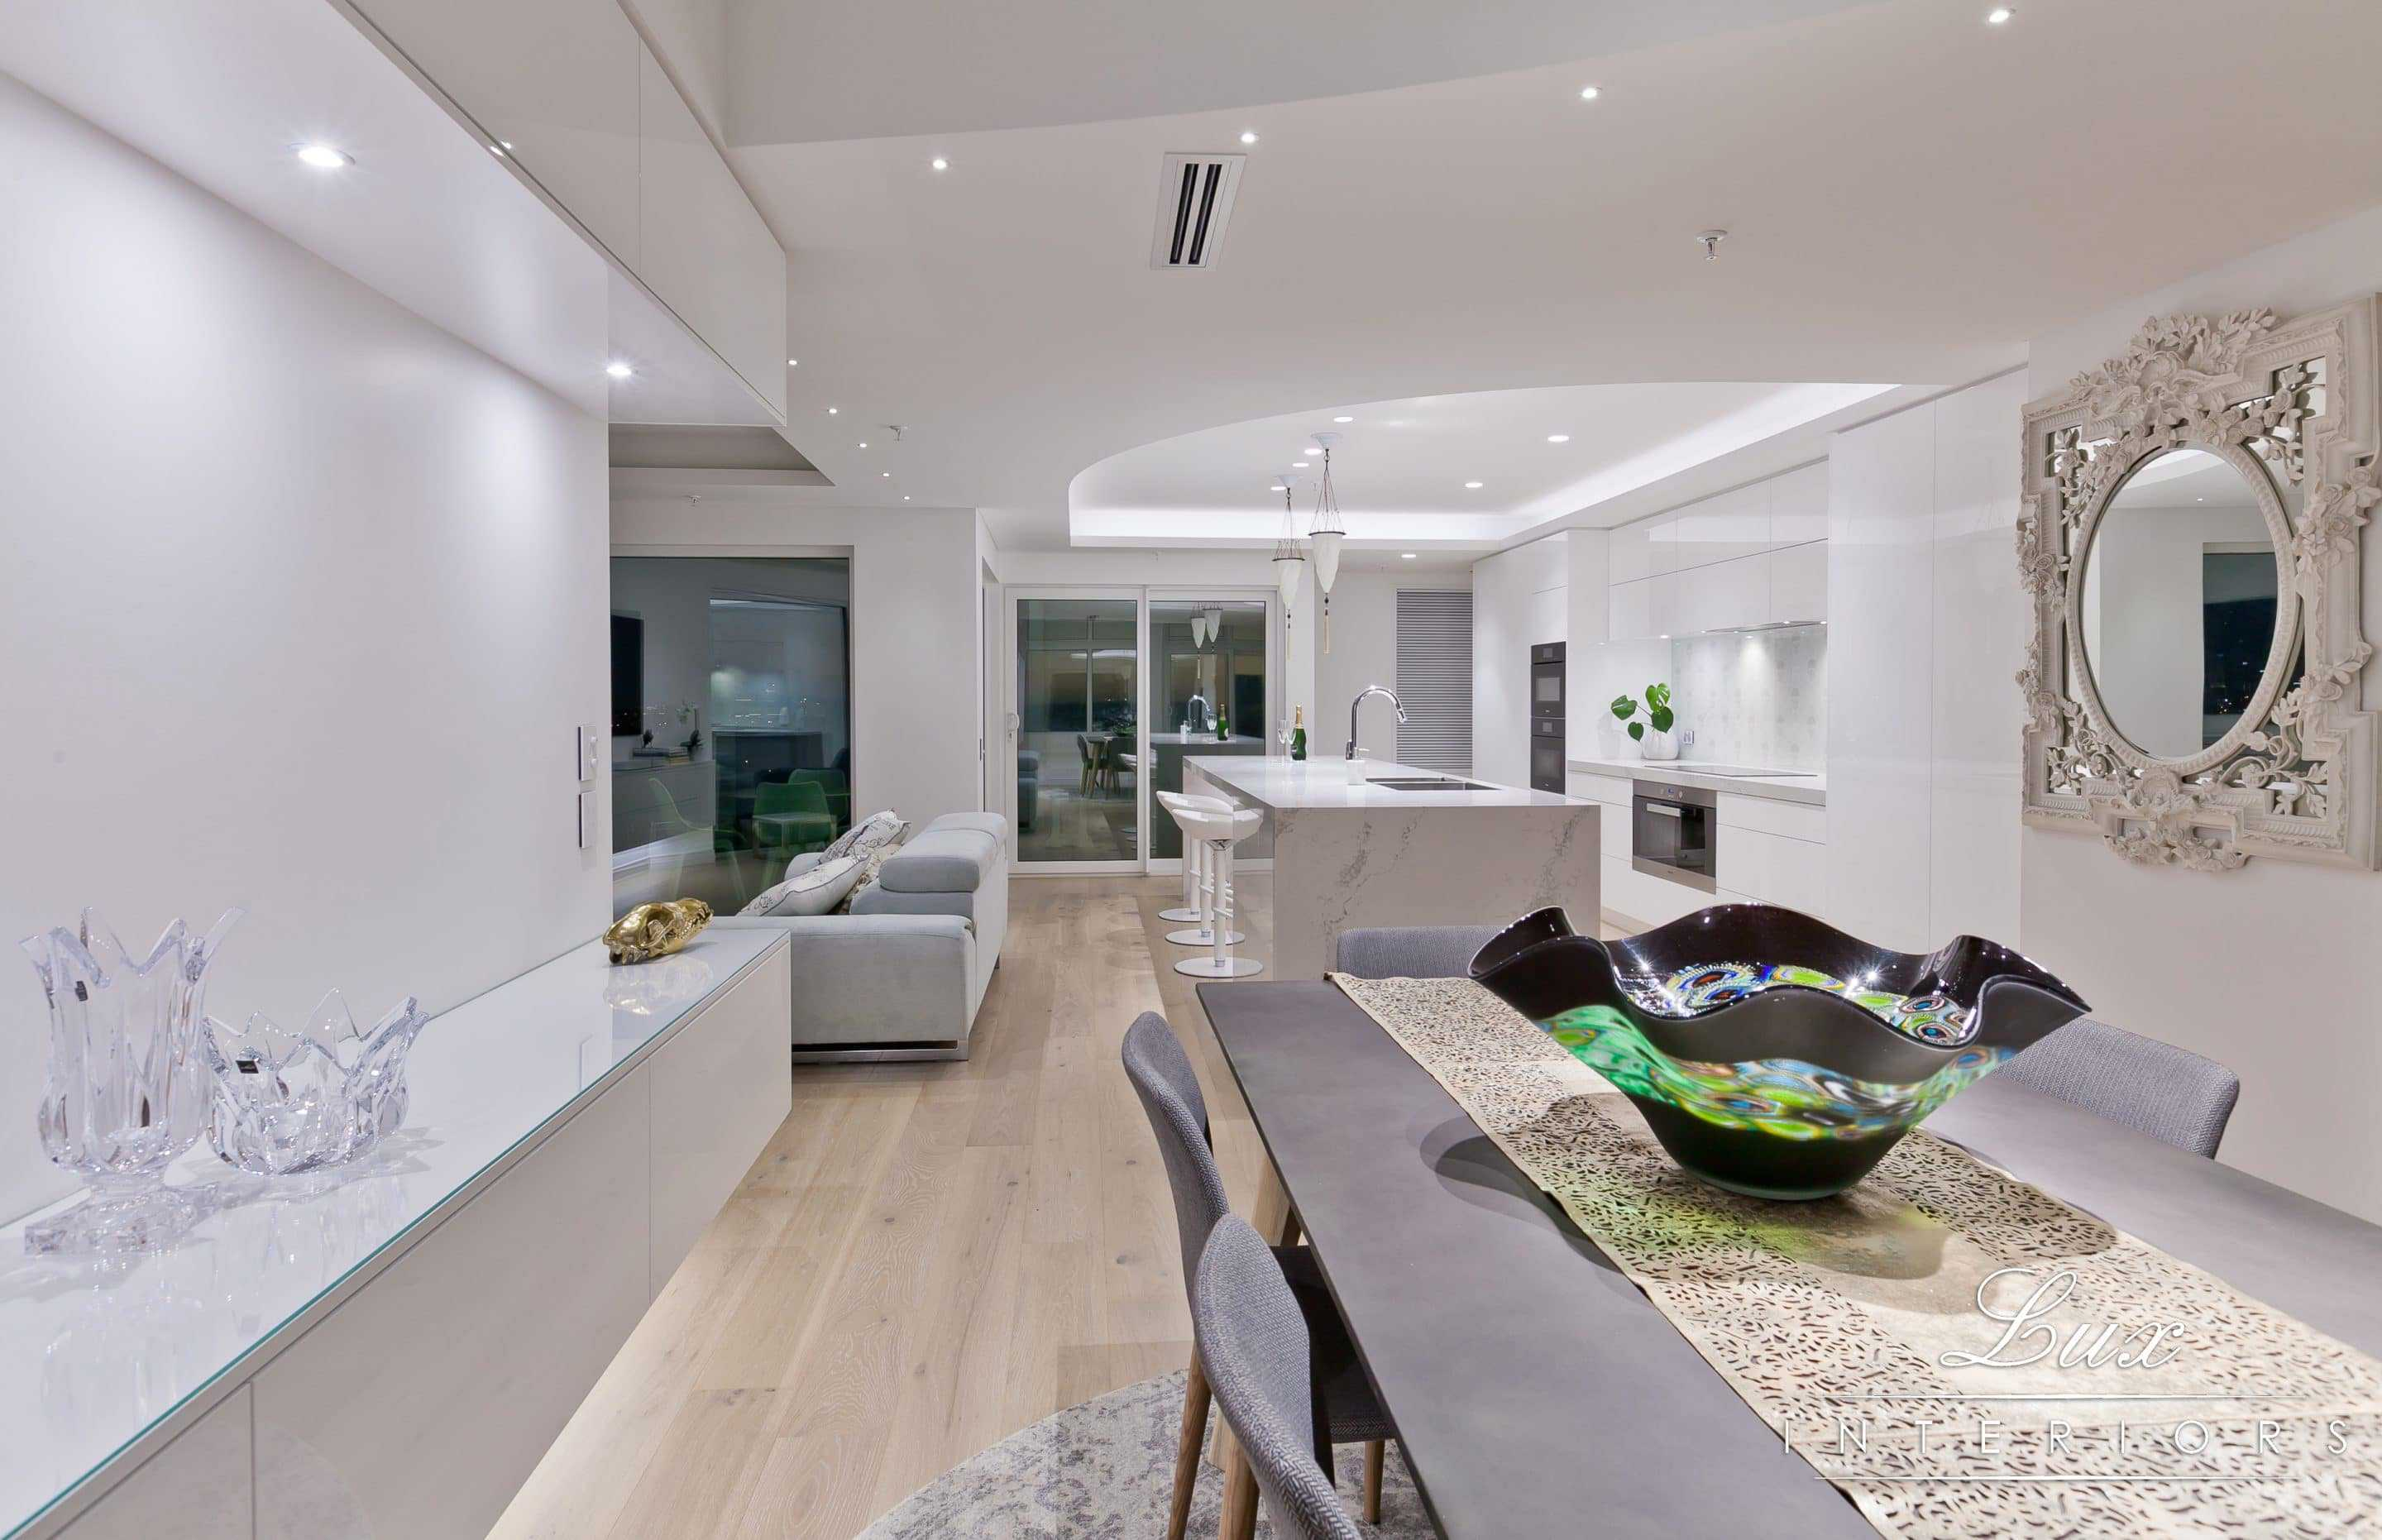 intricate details of the benchtop in the dining room with shot of kitchen and lounge